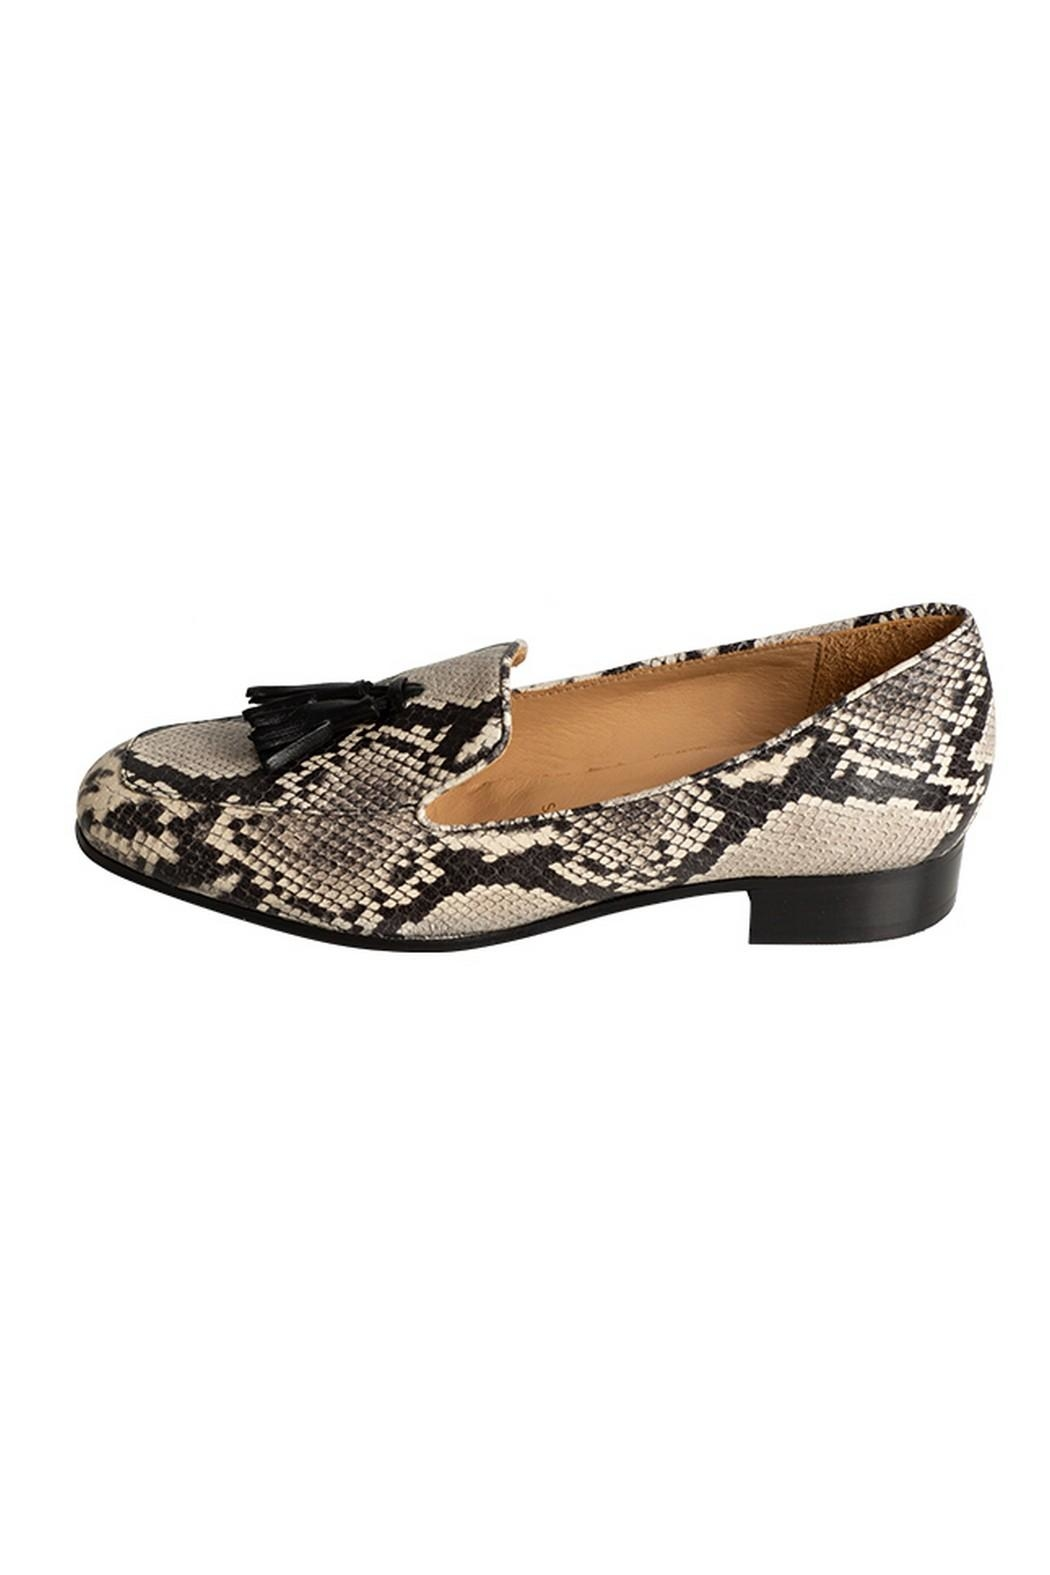 Pascucci Snakeskin Leather Loafers - Main Image